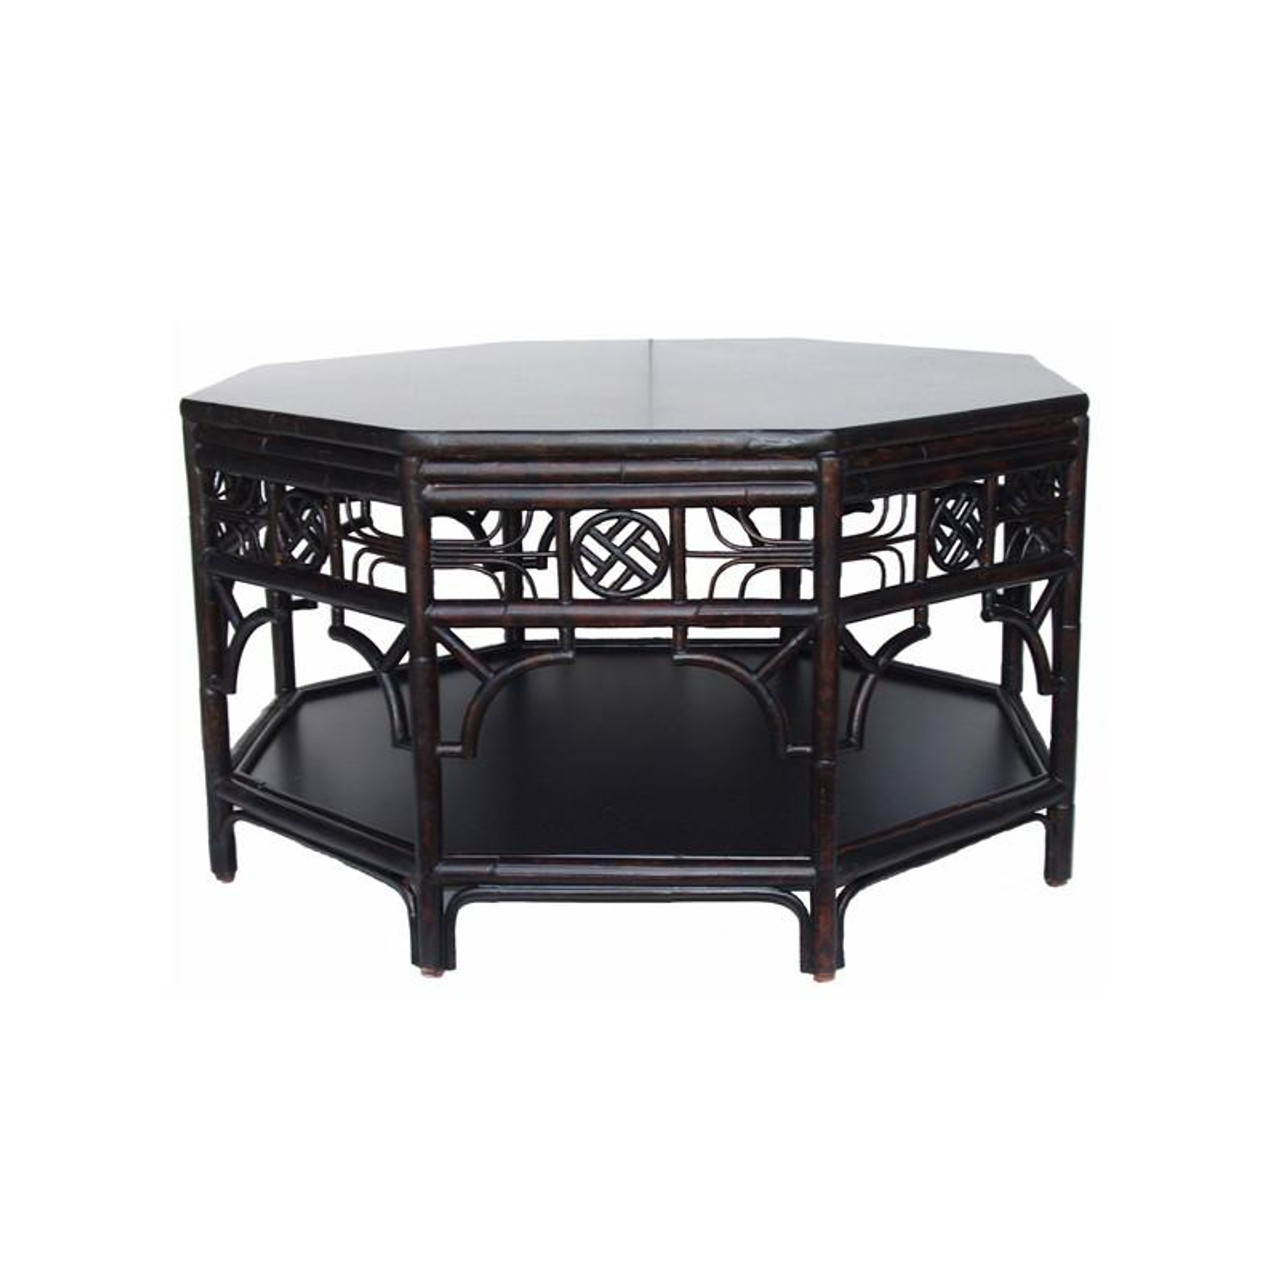 Can301 Red Egg Indochine Octagonal Coffee Table